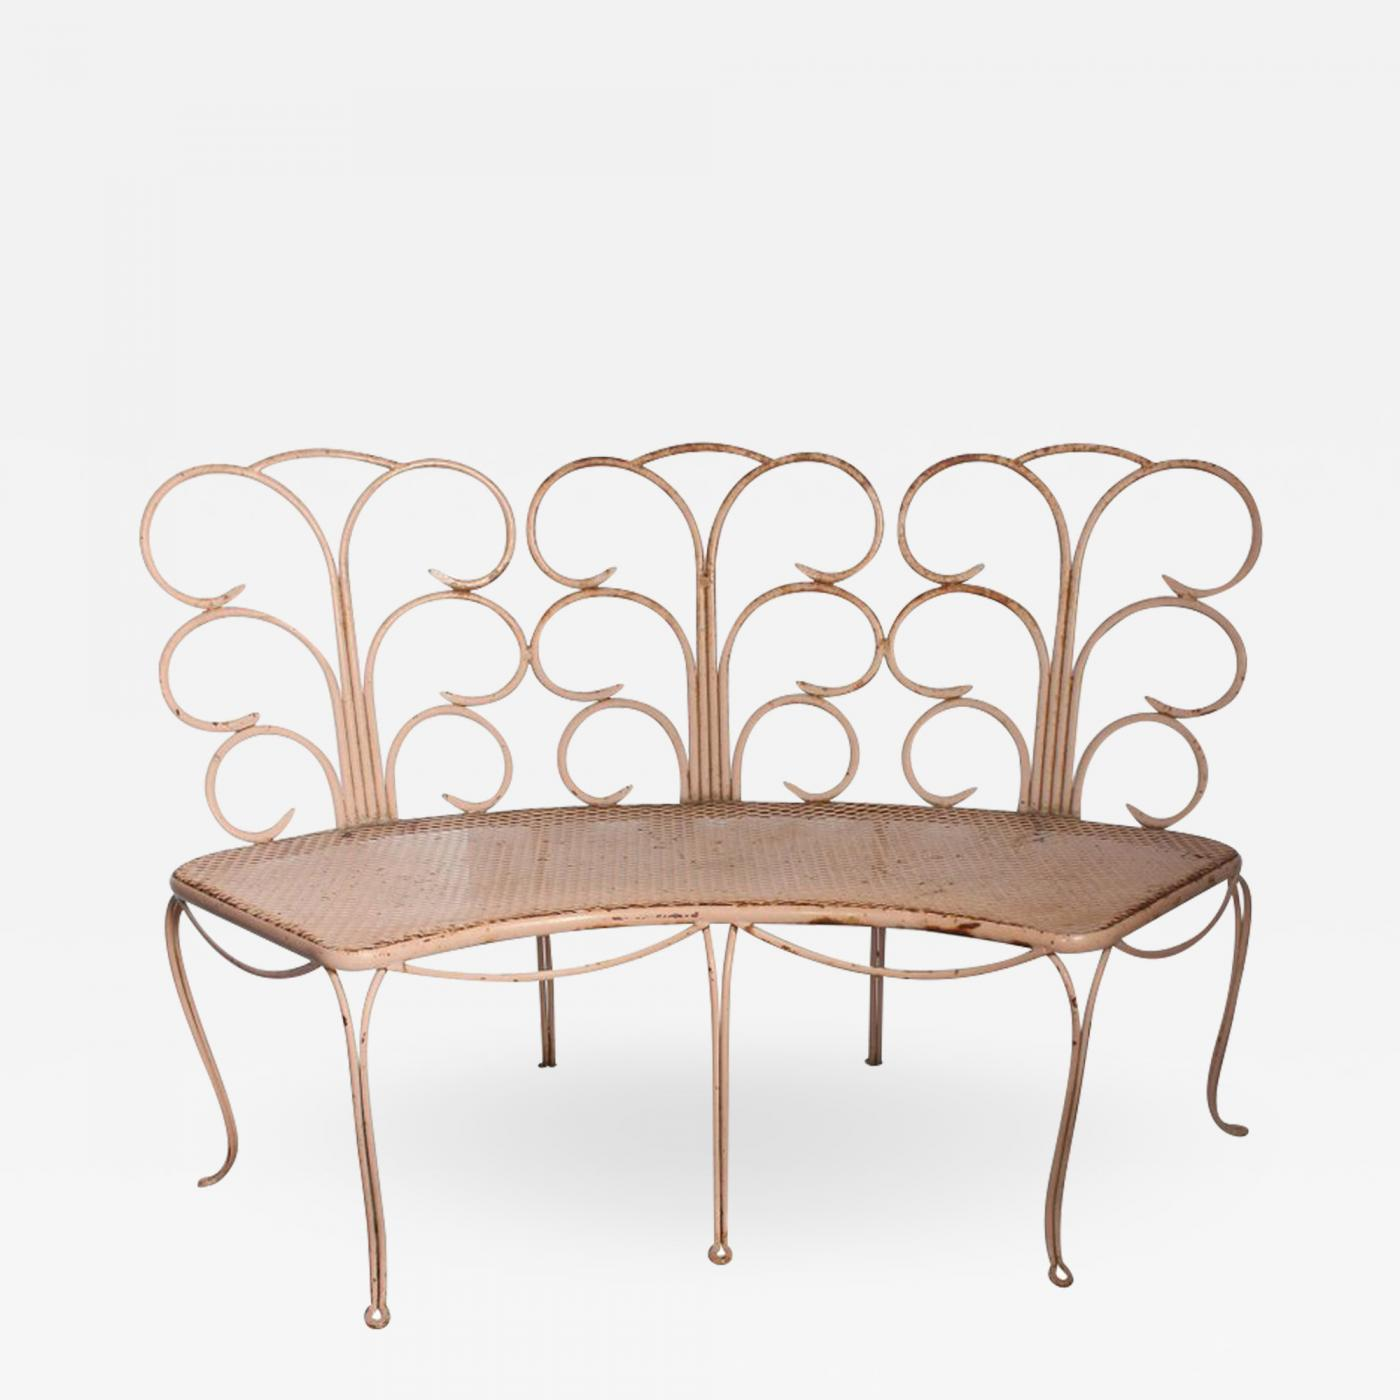 Astonishing Midcentury French Wrought Iron Garden Bench Two Available Beatyapartments Chair Design Images Beatyapartmentscom